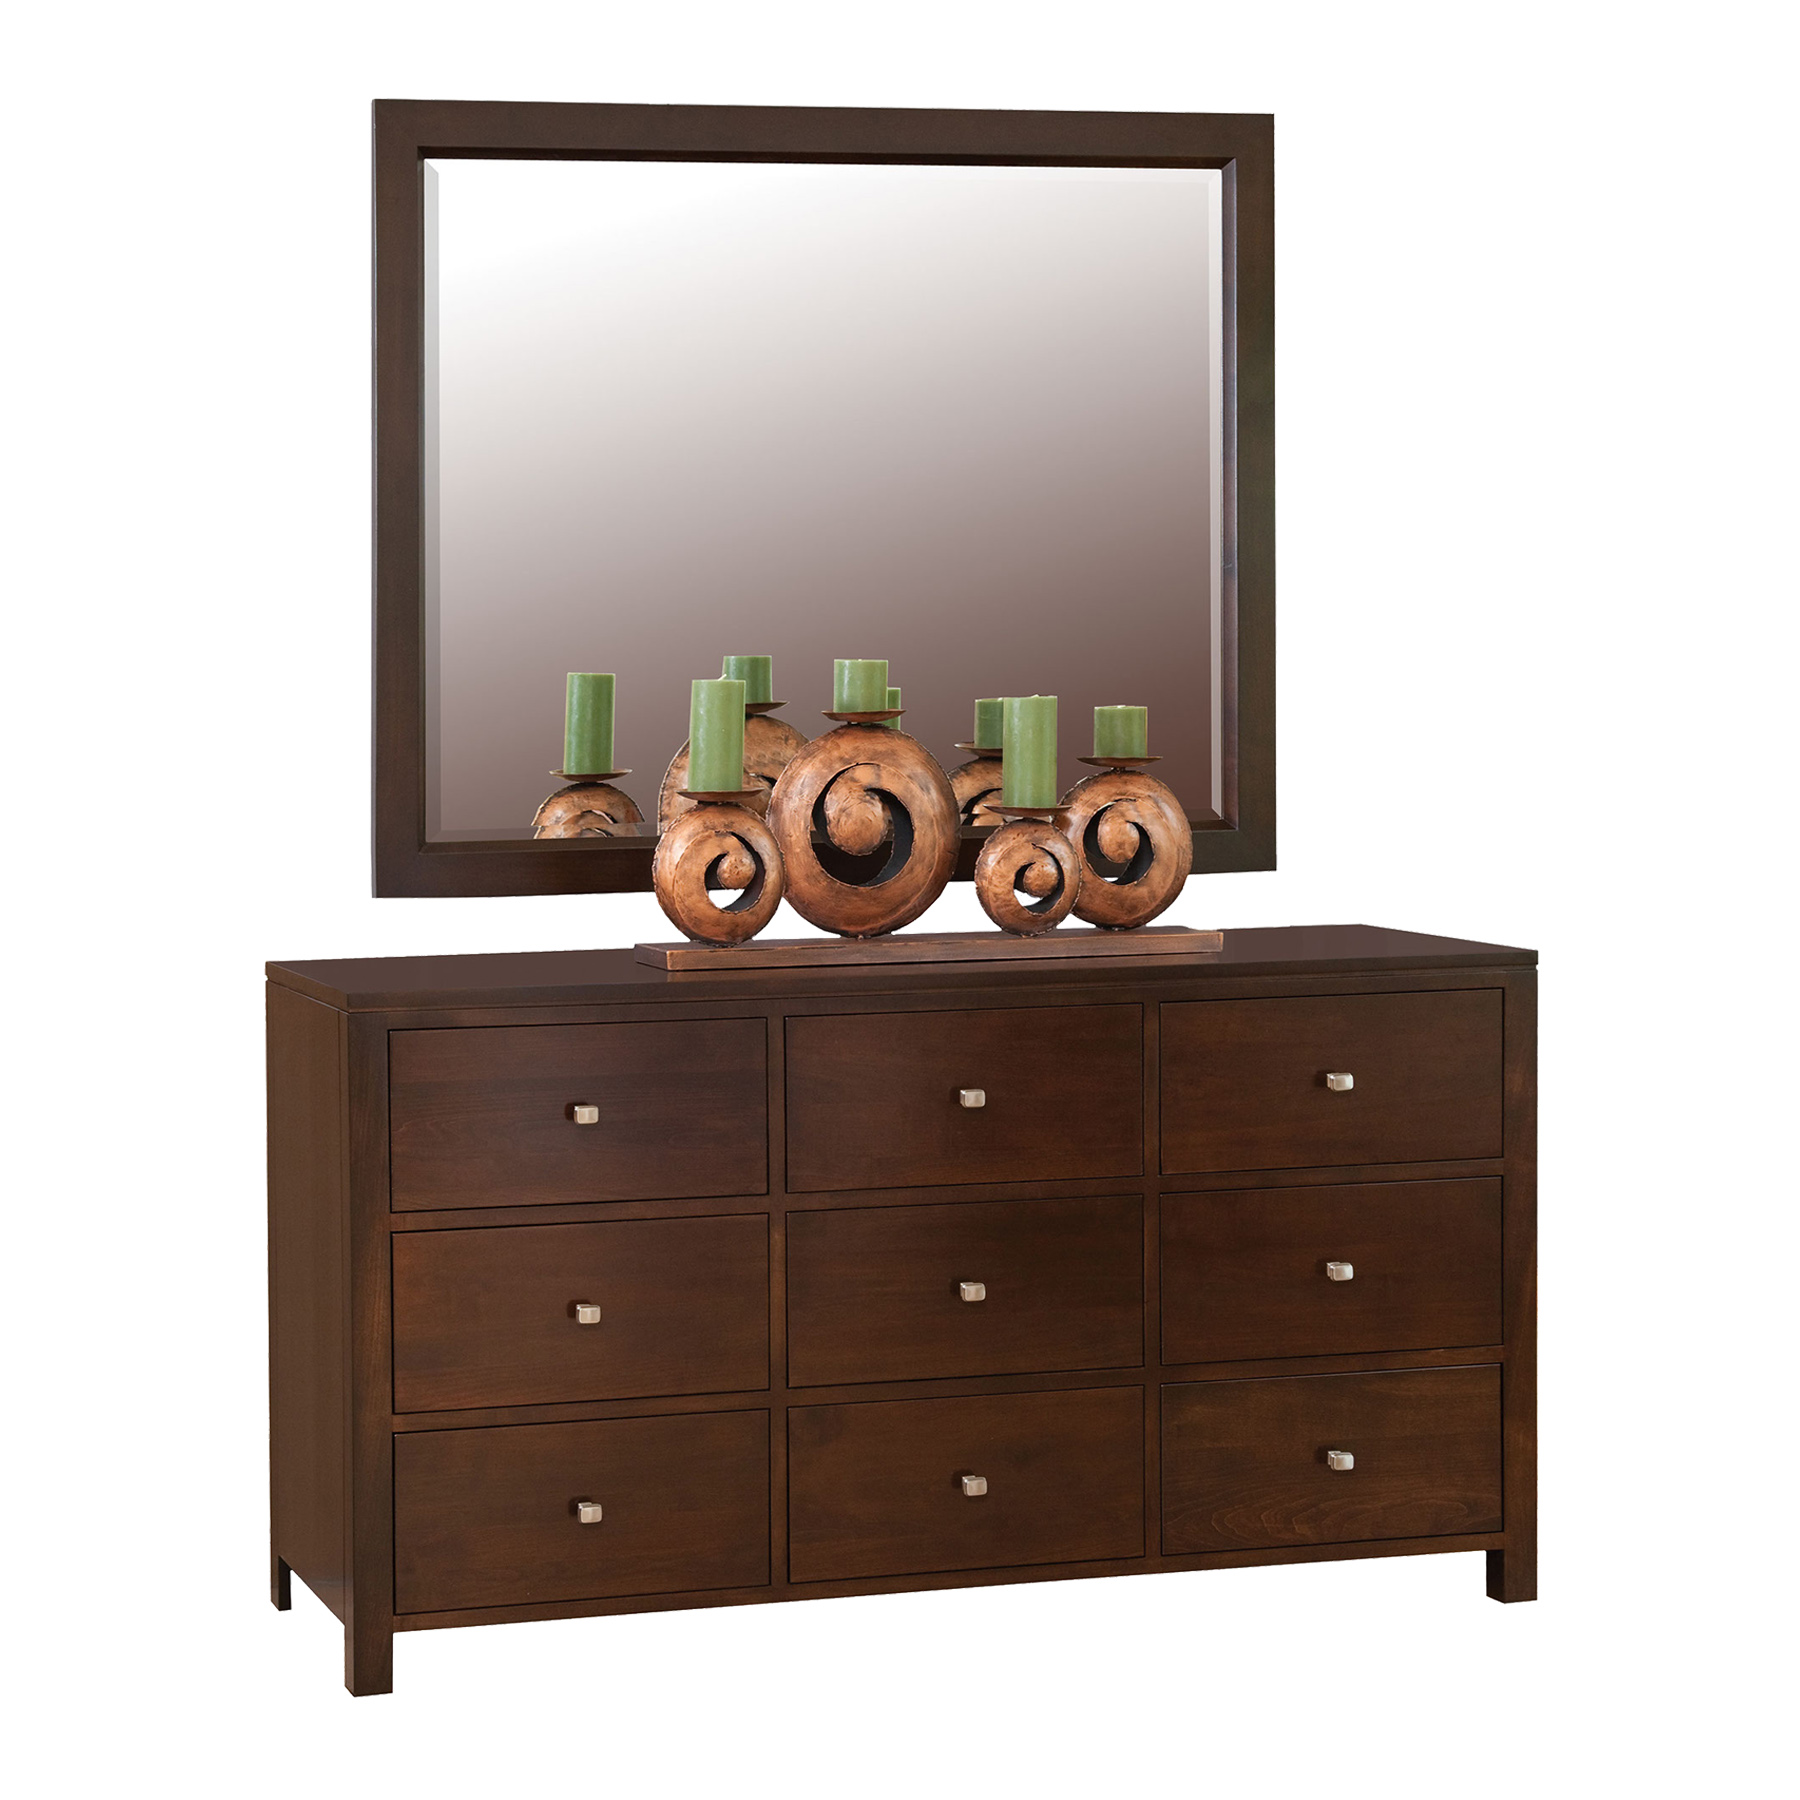 Dresser with Wall Mirror